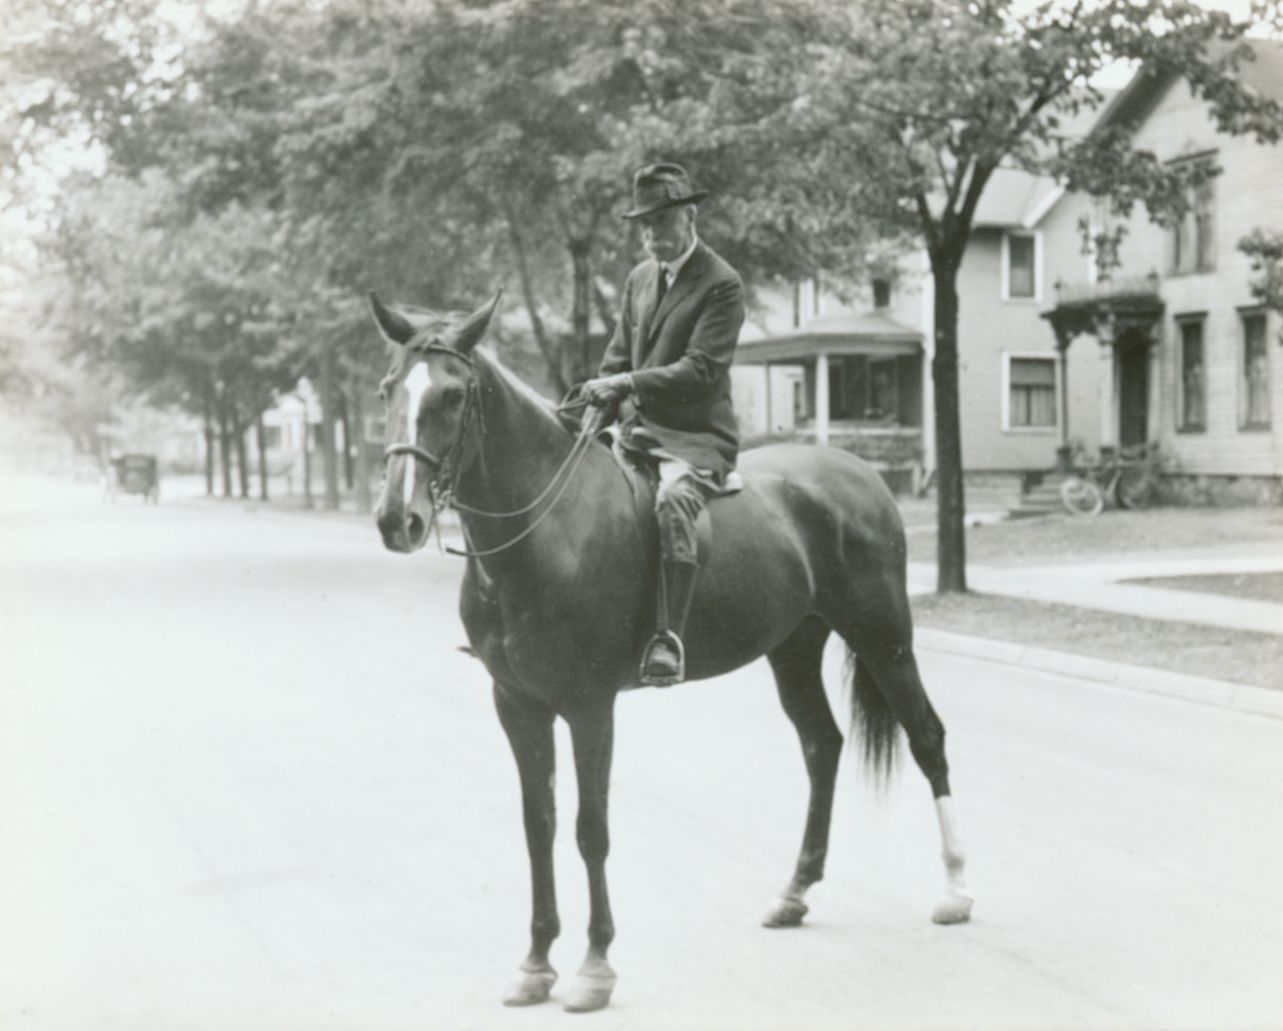 Frank Kedzie on a horse, 1931